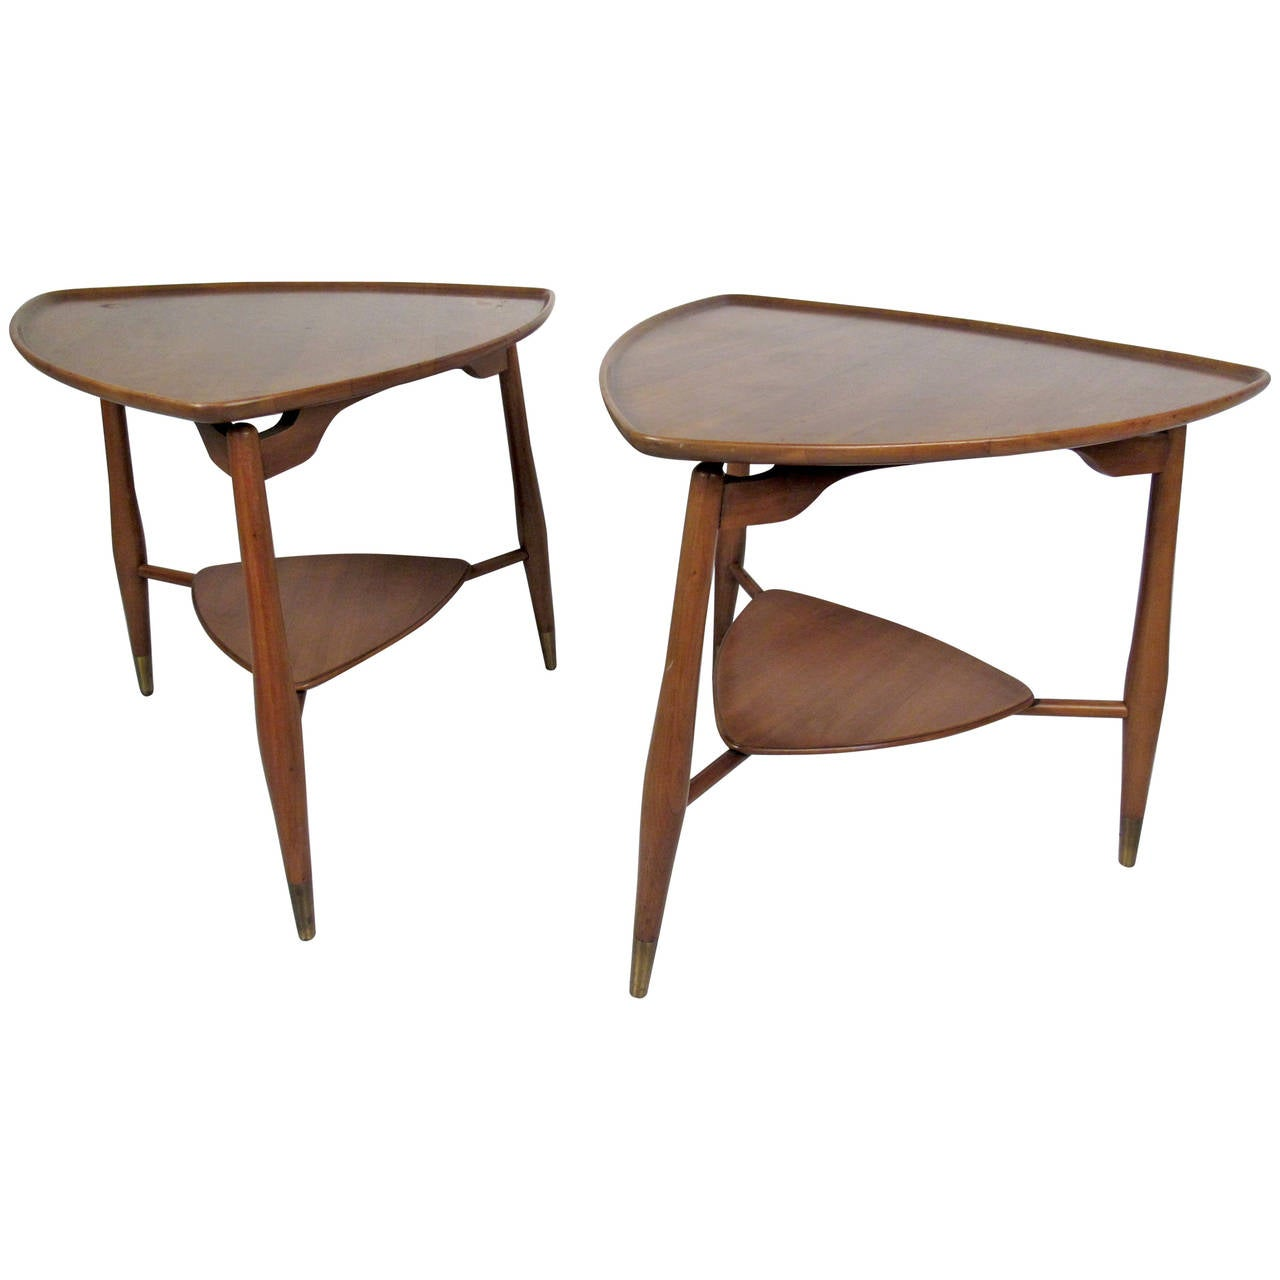 pair of mid century modern end tables by john widdicomb for sale  - pair of mid century modern end tables by john widdicomb